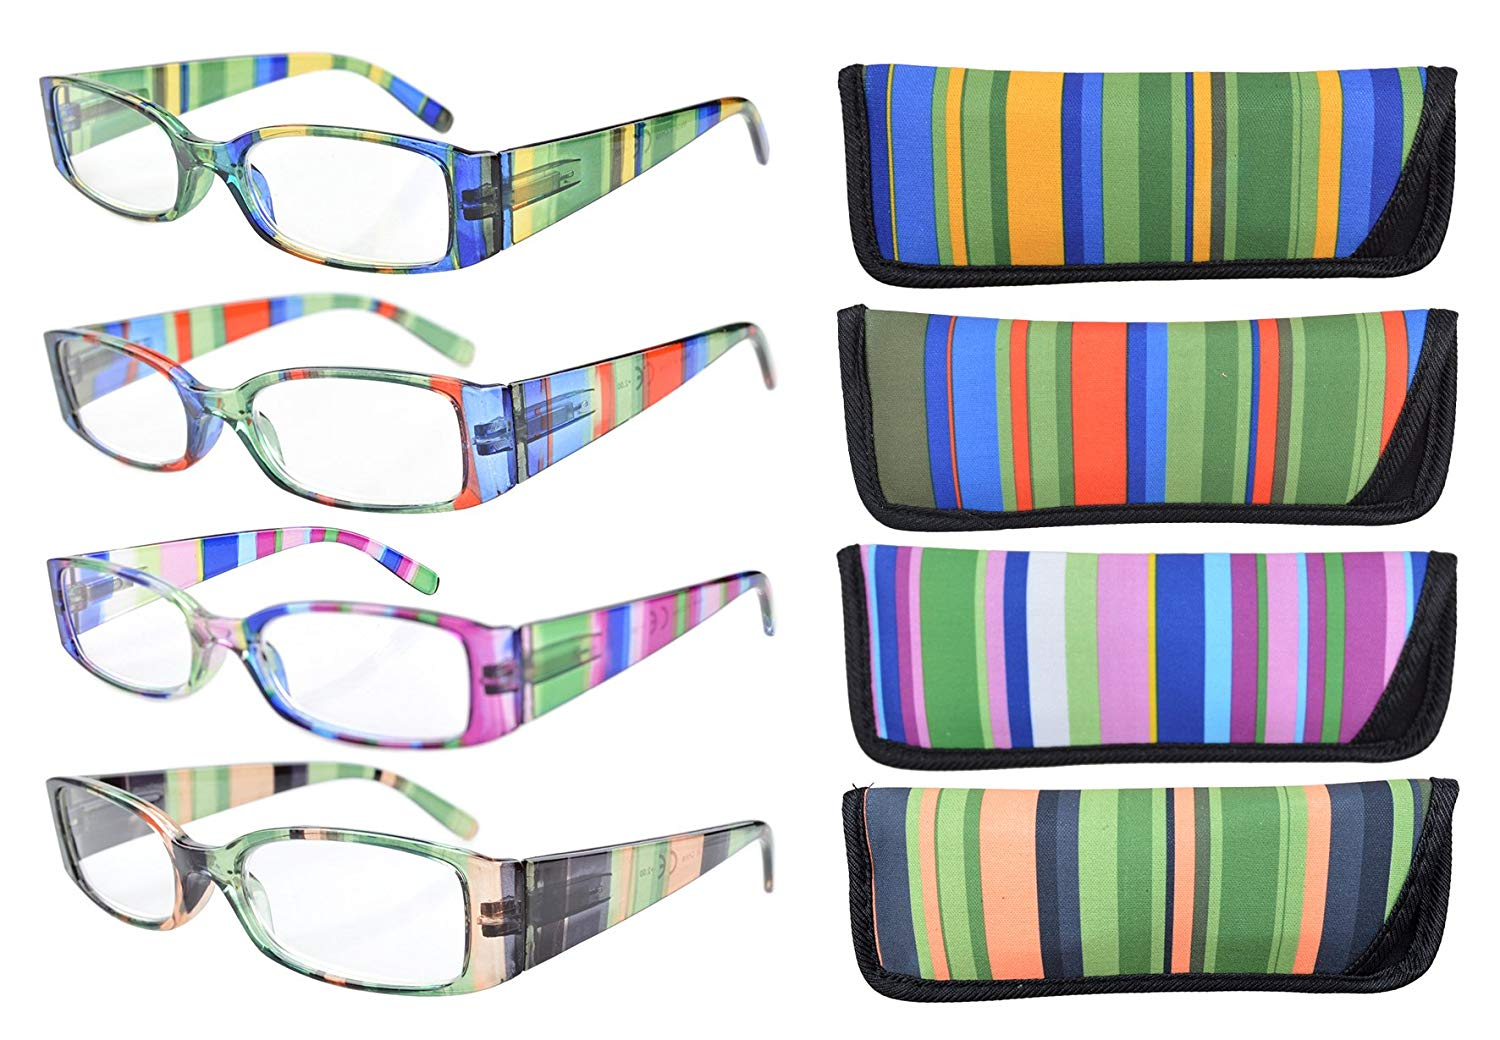 eb1ee9314a9c Eyekepper Reading Glasses 4-Pack Striped Design Temples with Rectangular Frame  Readers Women Men Mix Color +2.50